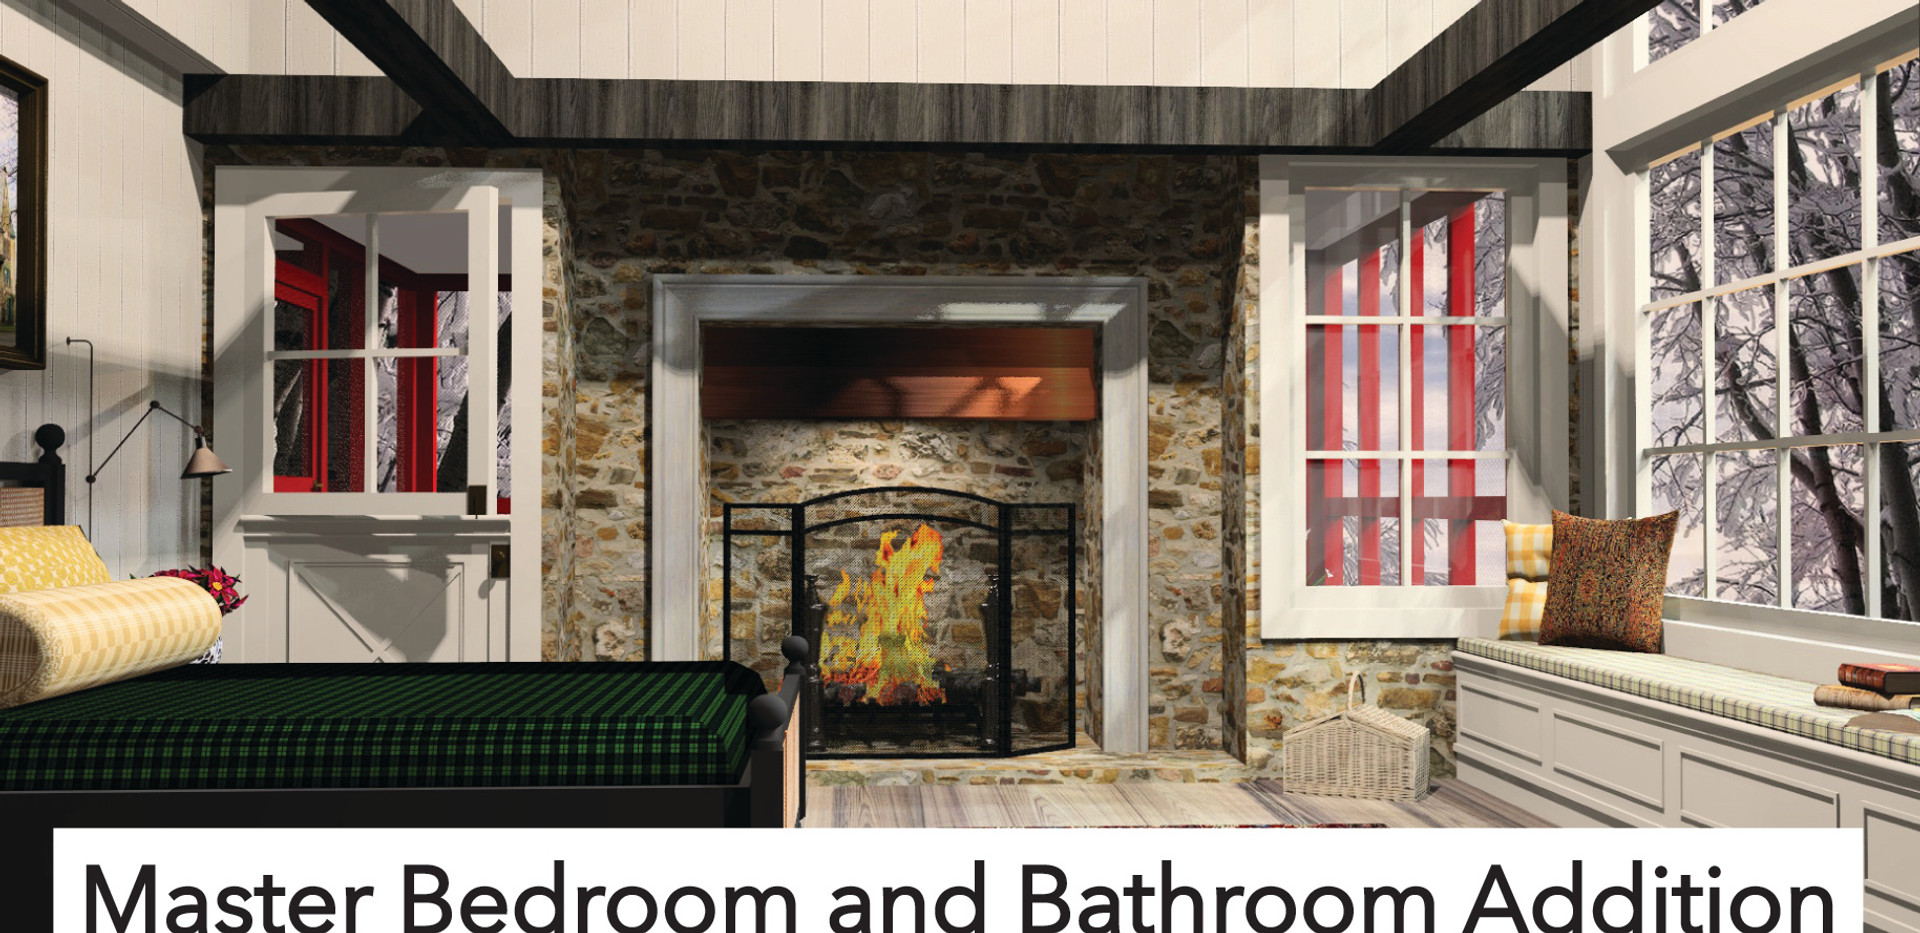 Home Renovation Inspired by Holiday Classic